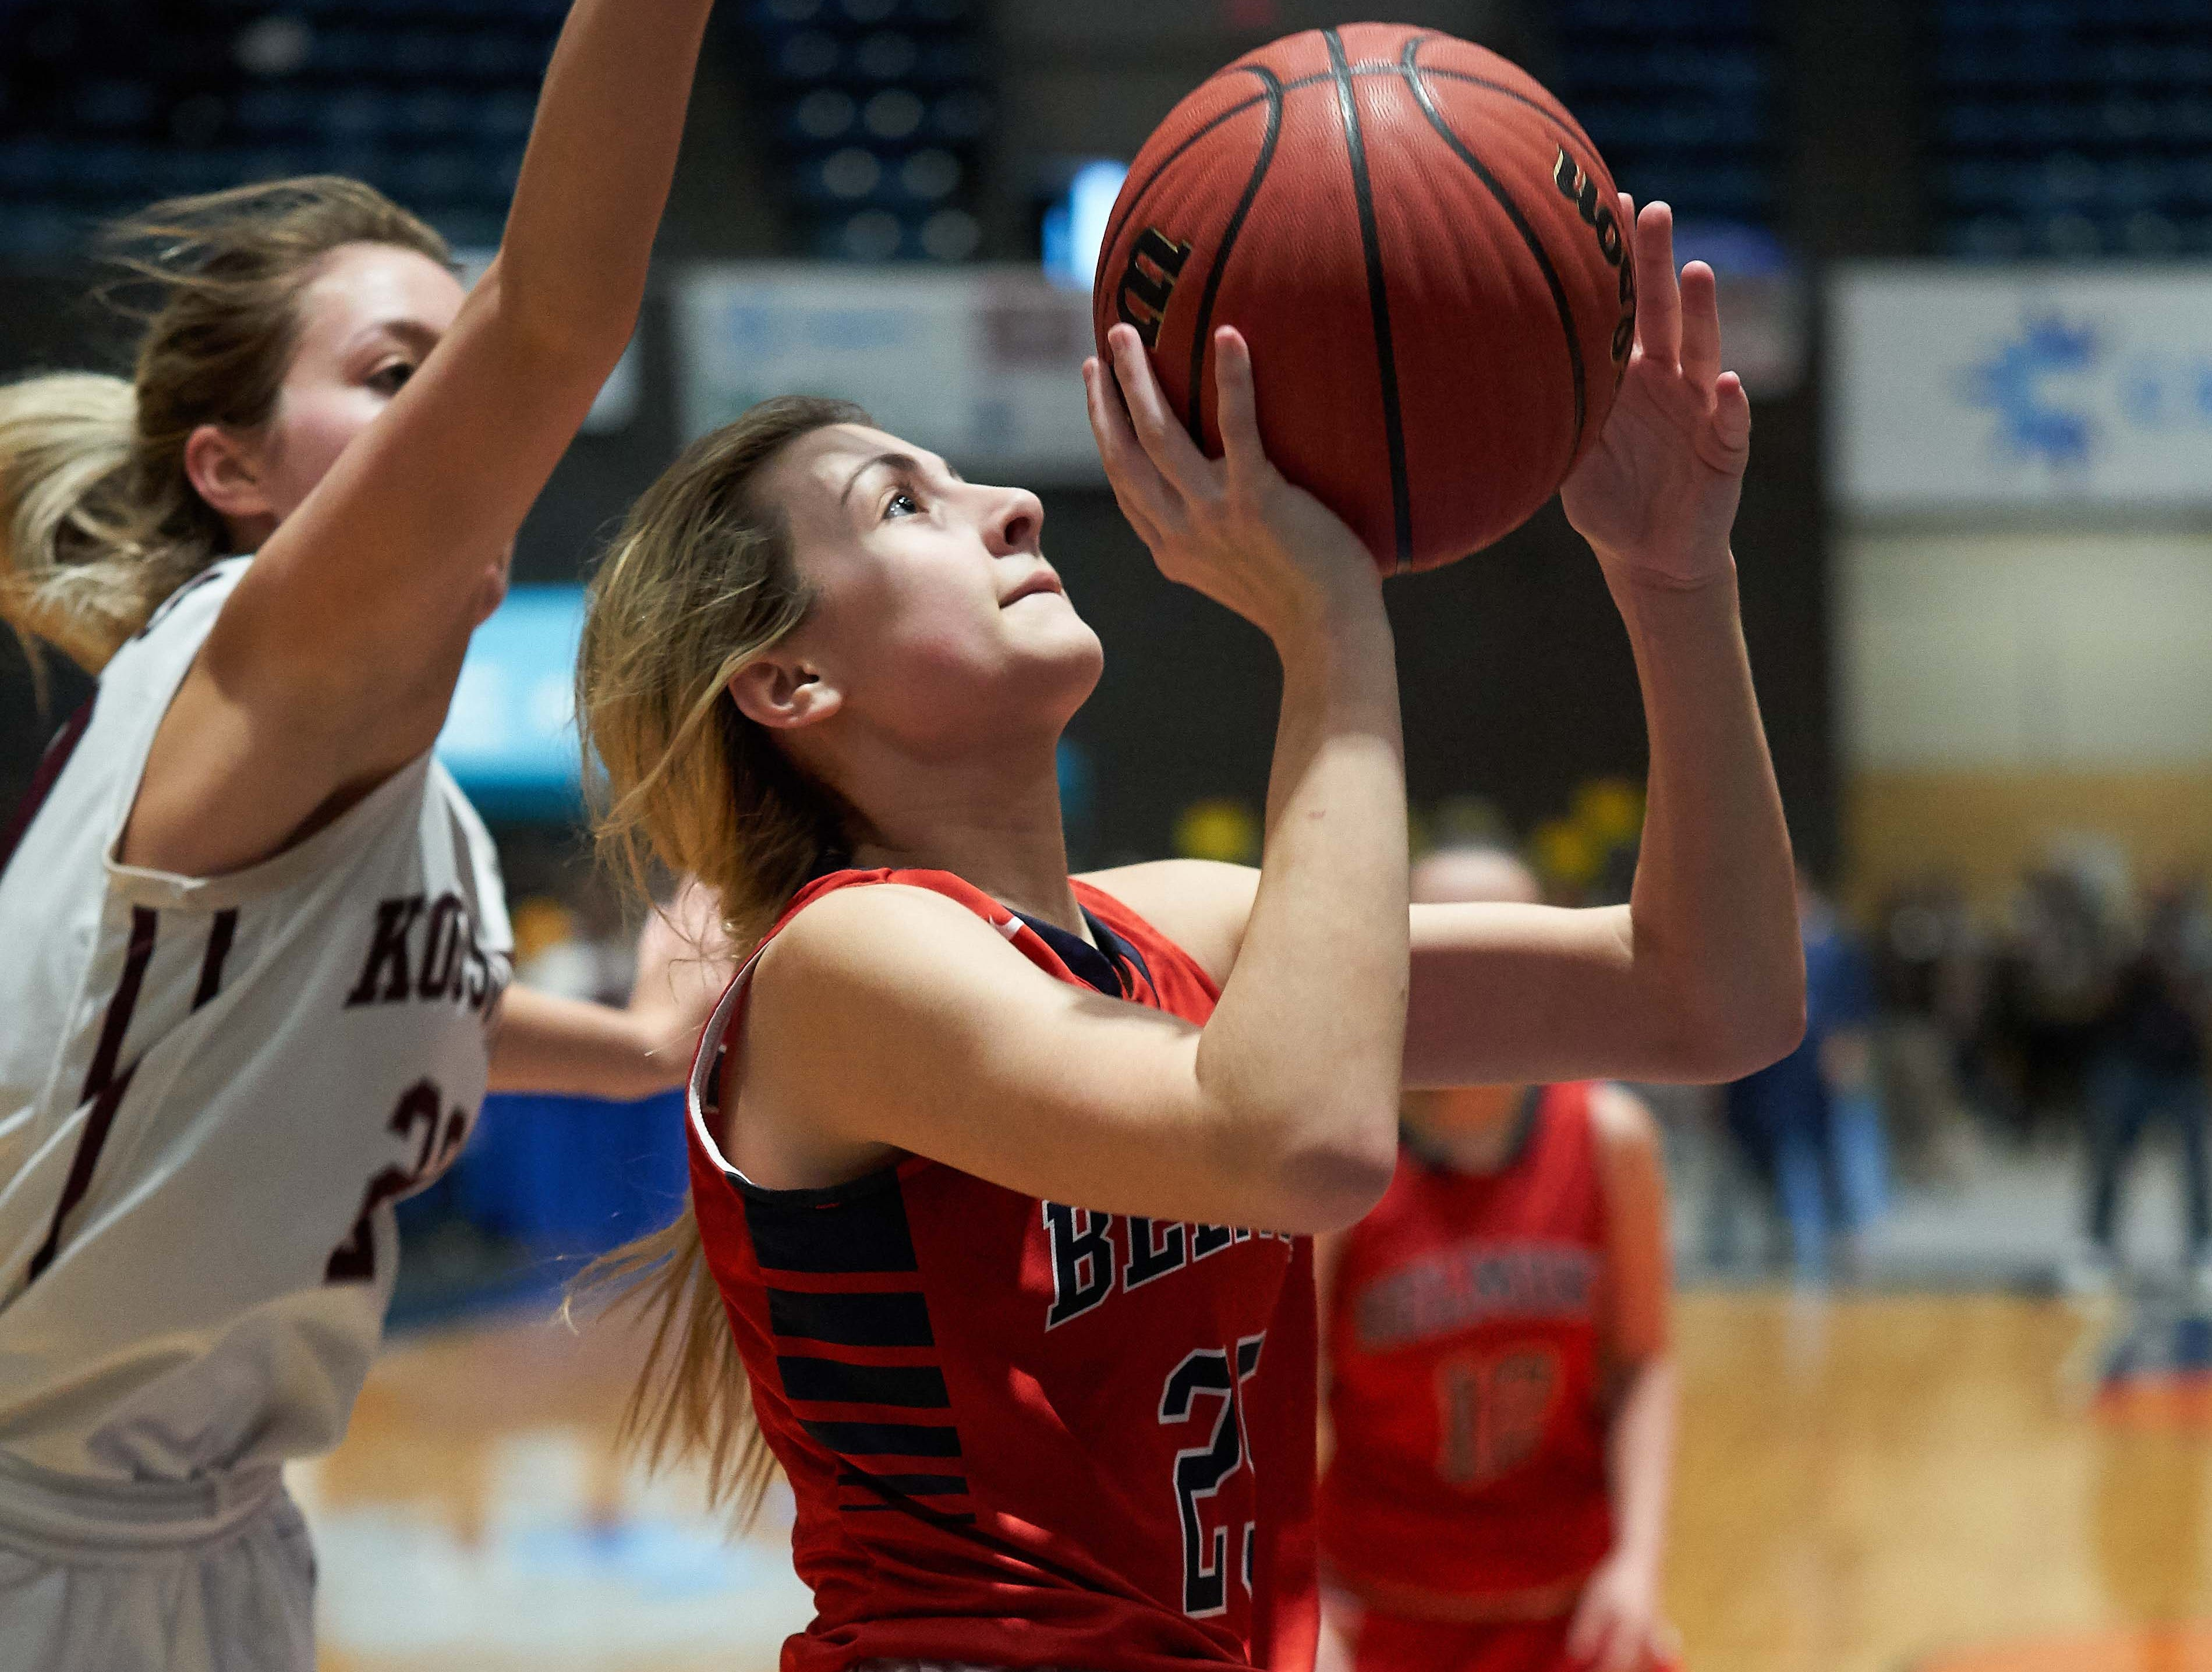 Belmont's Abby Kuykendall drives during the MHSAA 3A Girls Basketball Championship Finals held at the Mississippi Coliseum in Jackson, MS, Saturday March 9th, 2019.(Bob Smith)